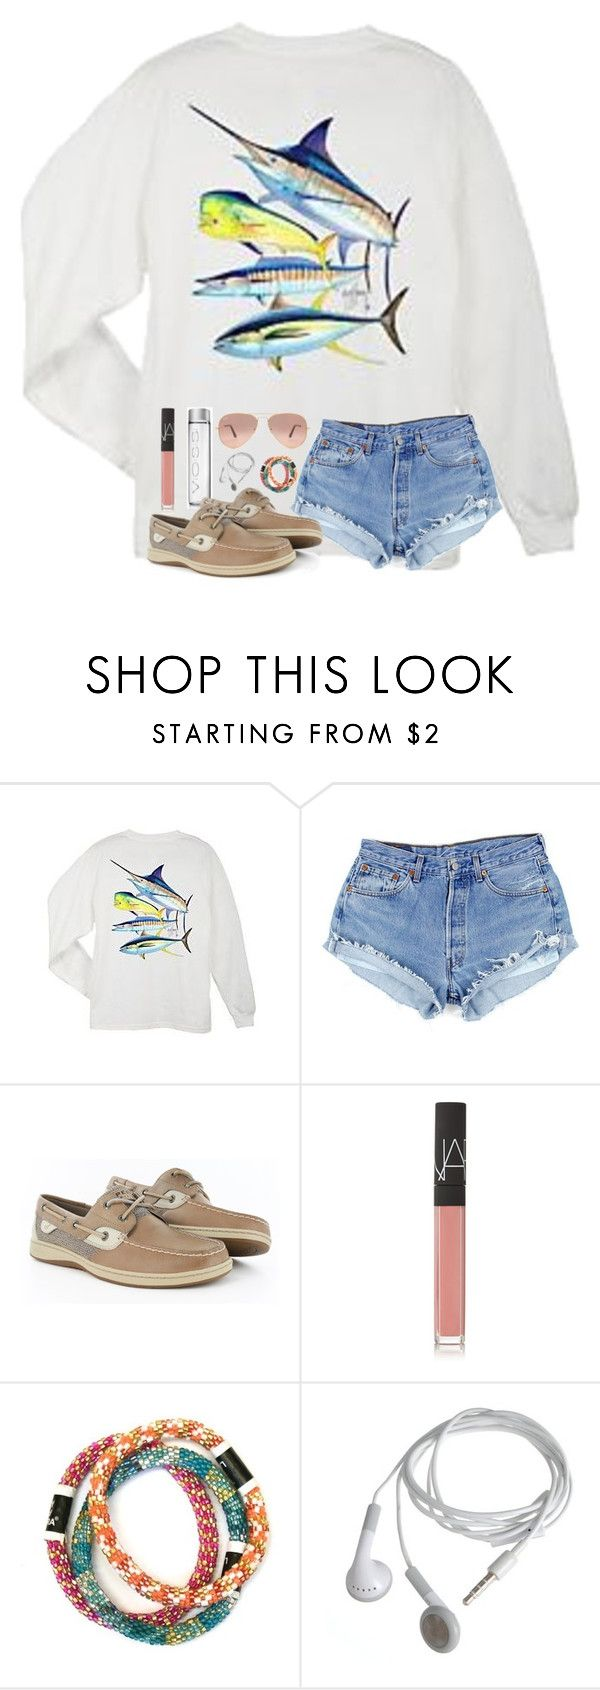 """""""Happy Friday!"""" by mmprep ❤ liked on Polyvore featuring Guy Harvey, Sperry, NARS Cosmetics and Ray-Ban"""